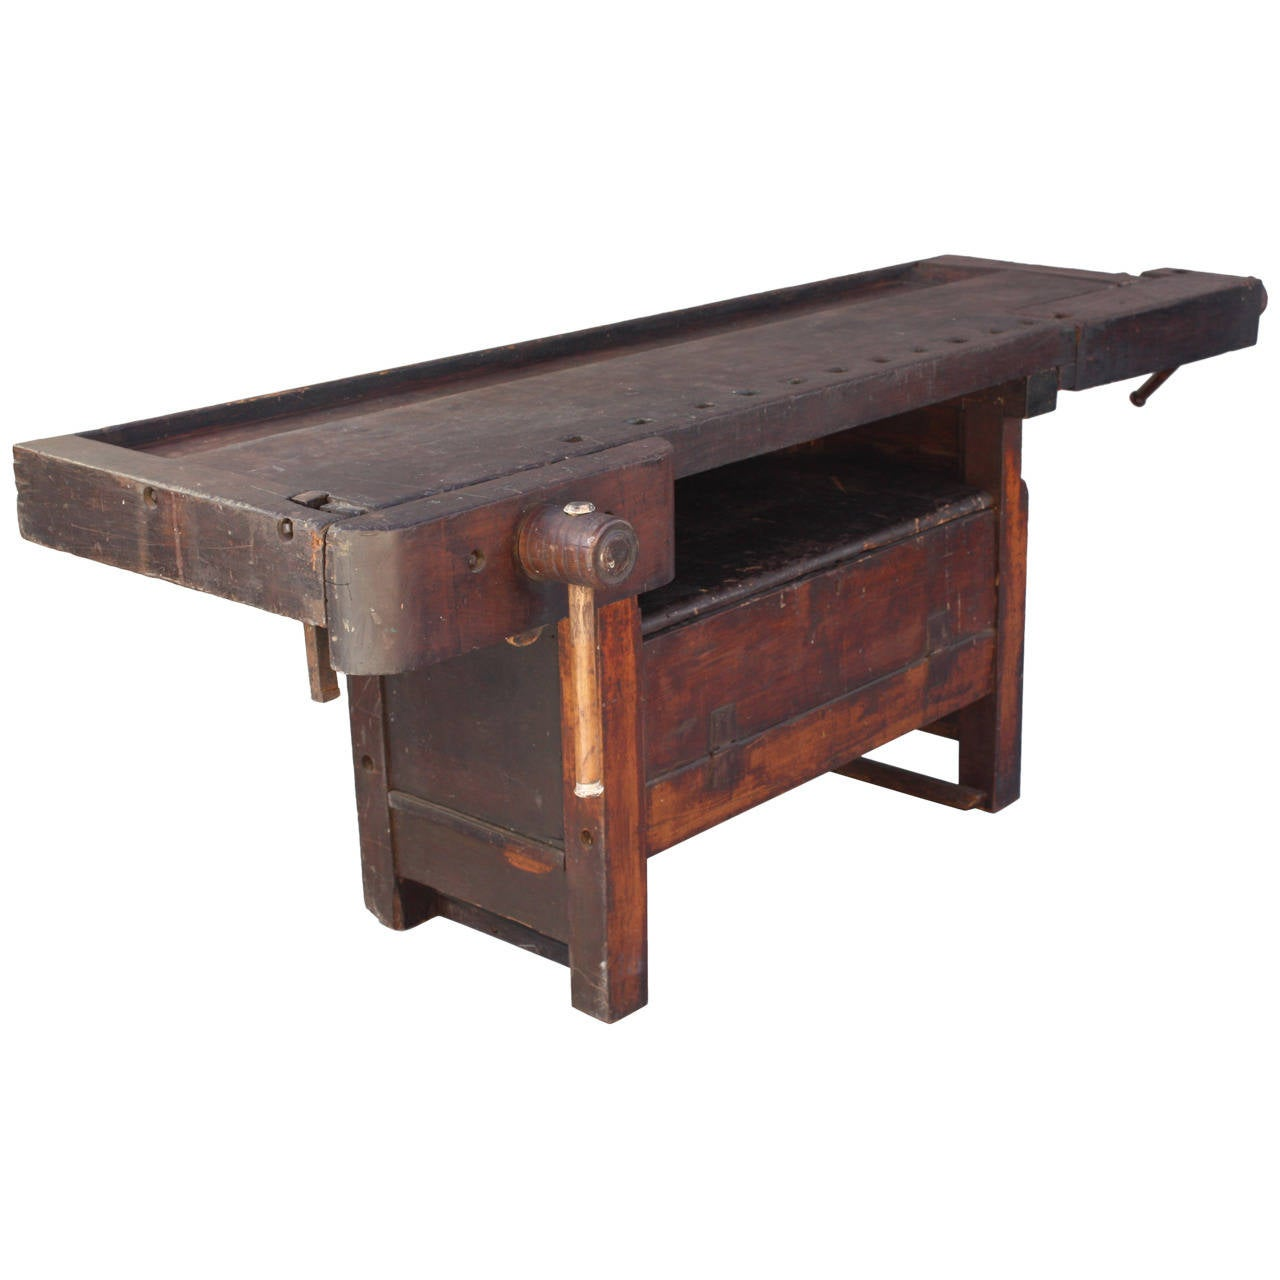 Fantastic Industrial Rustic Turn Of The Century Work Bench At 1stdibs